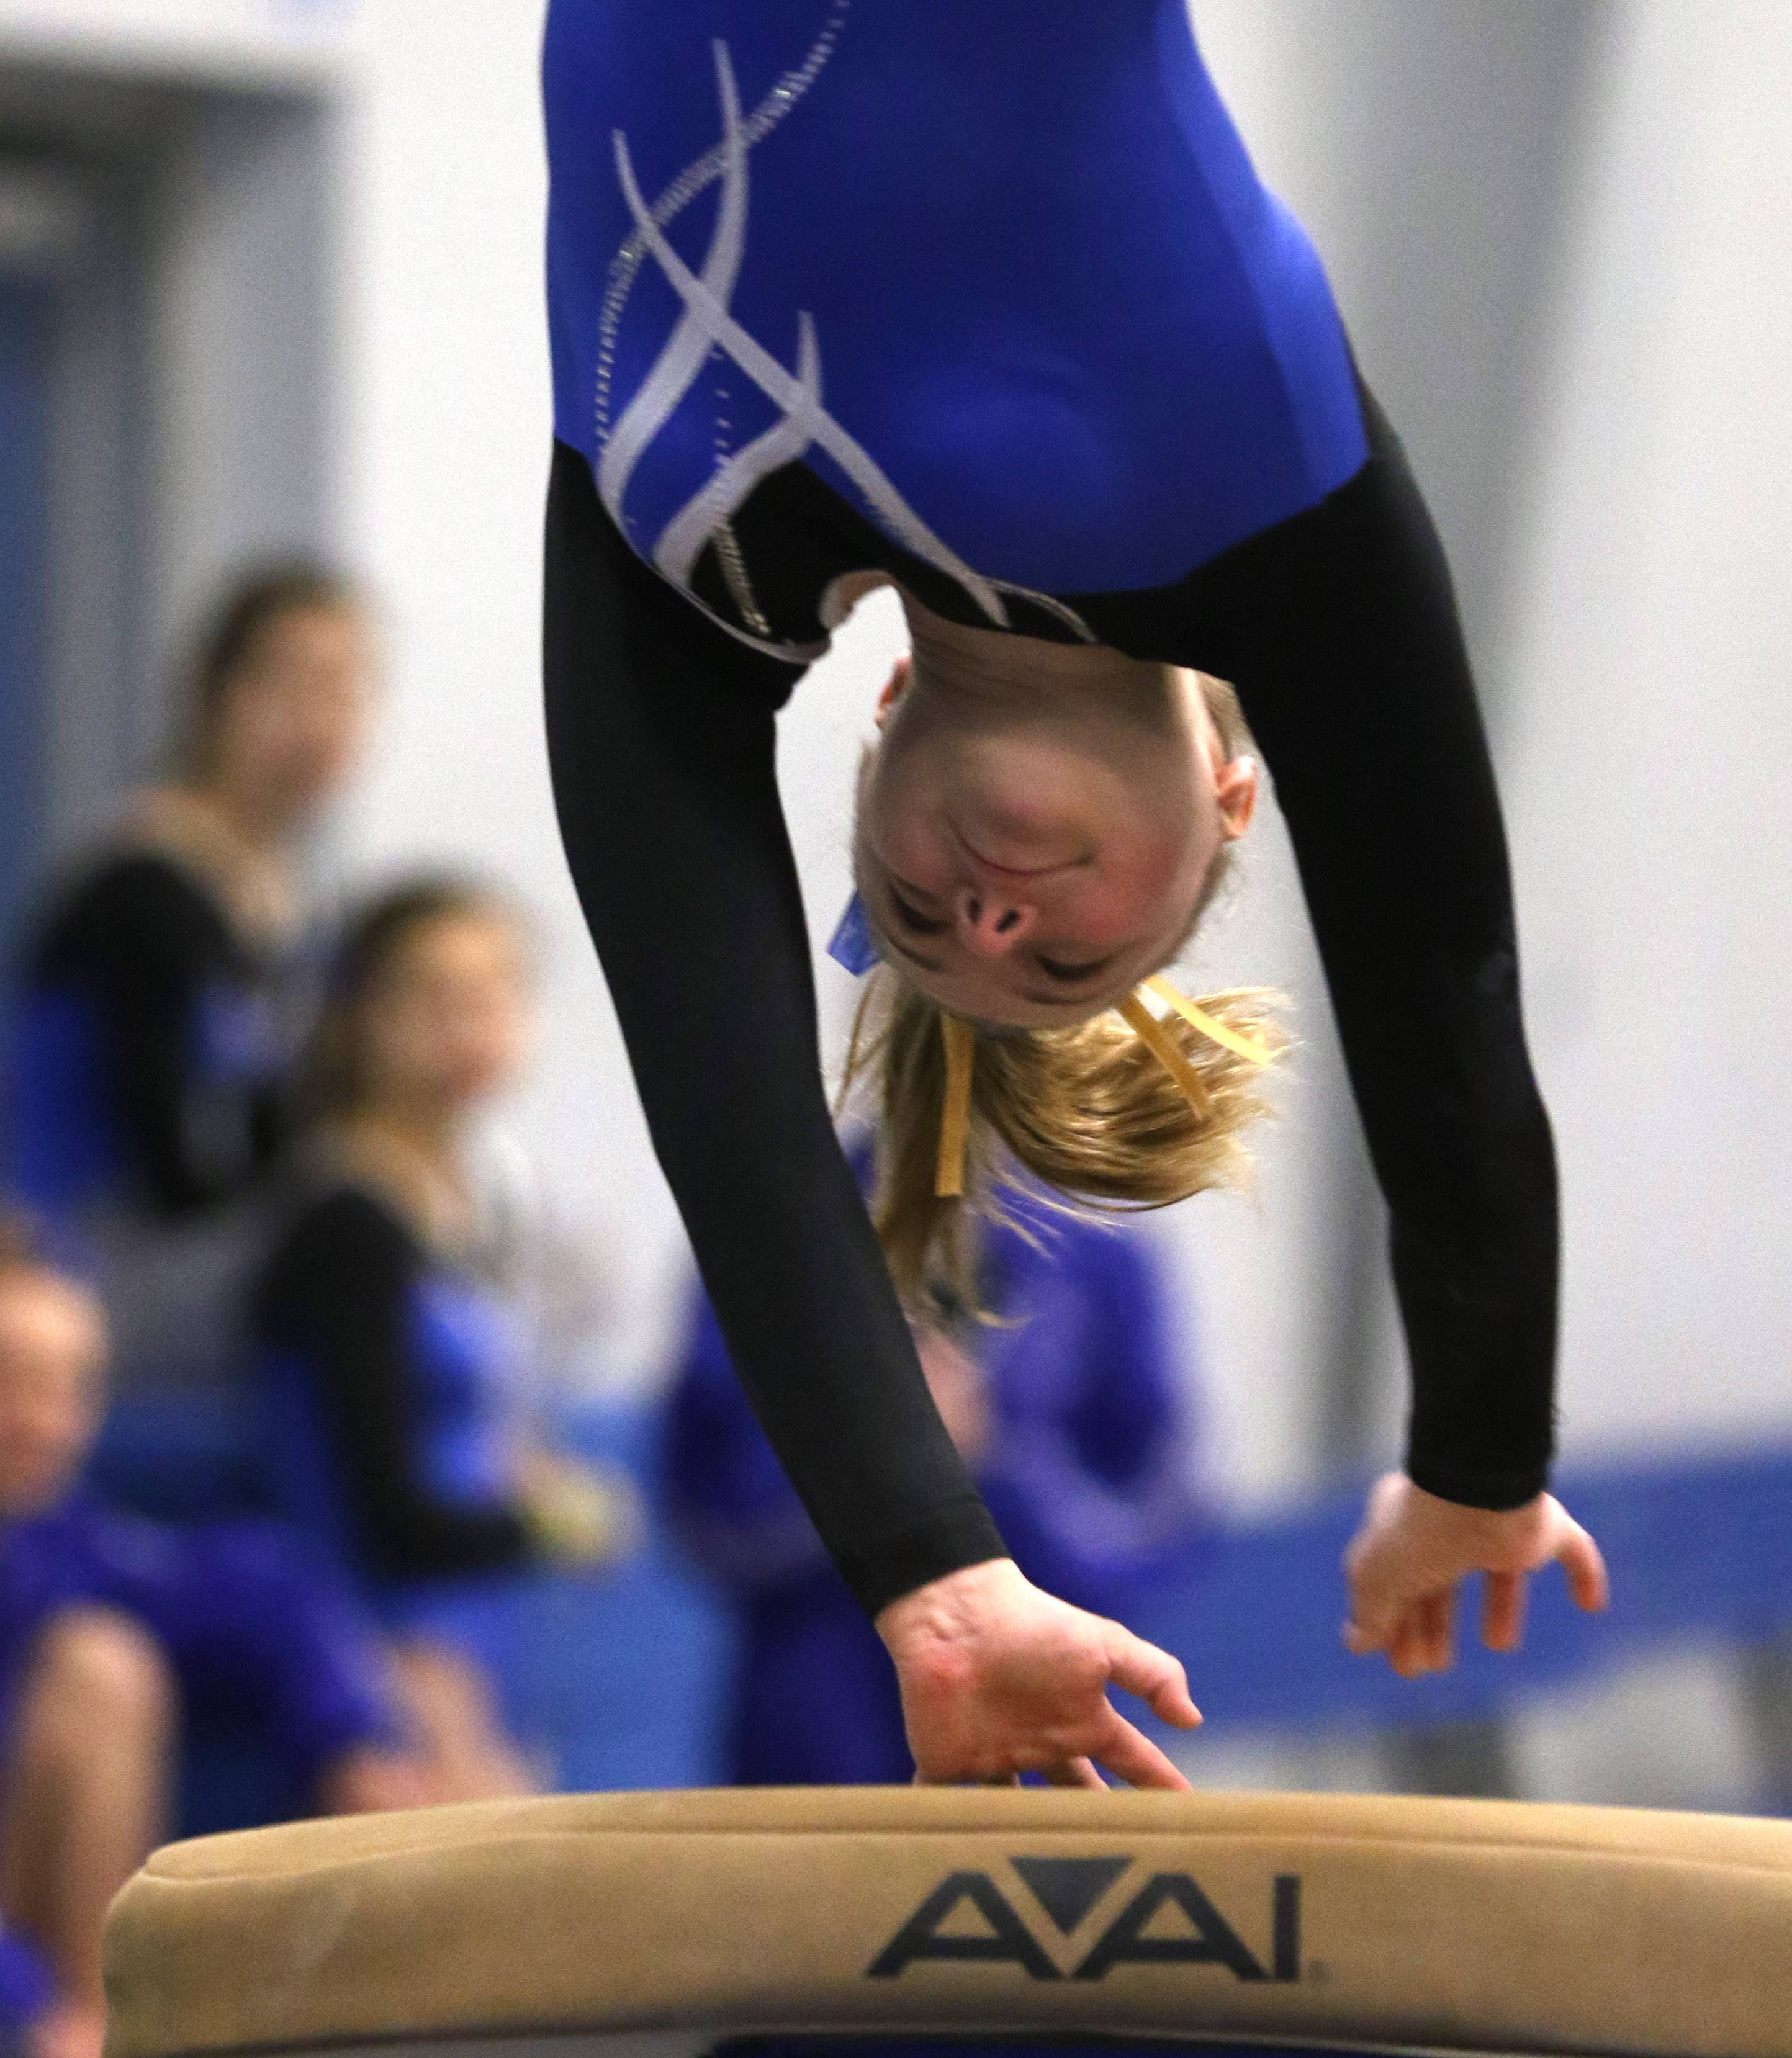 Wheeling's Anna Emery performs on the vault during regional gymnastics action at Wheeling on Monday evening.